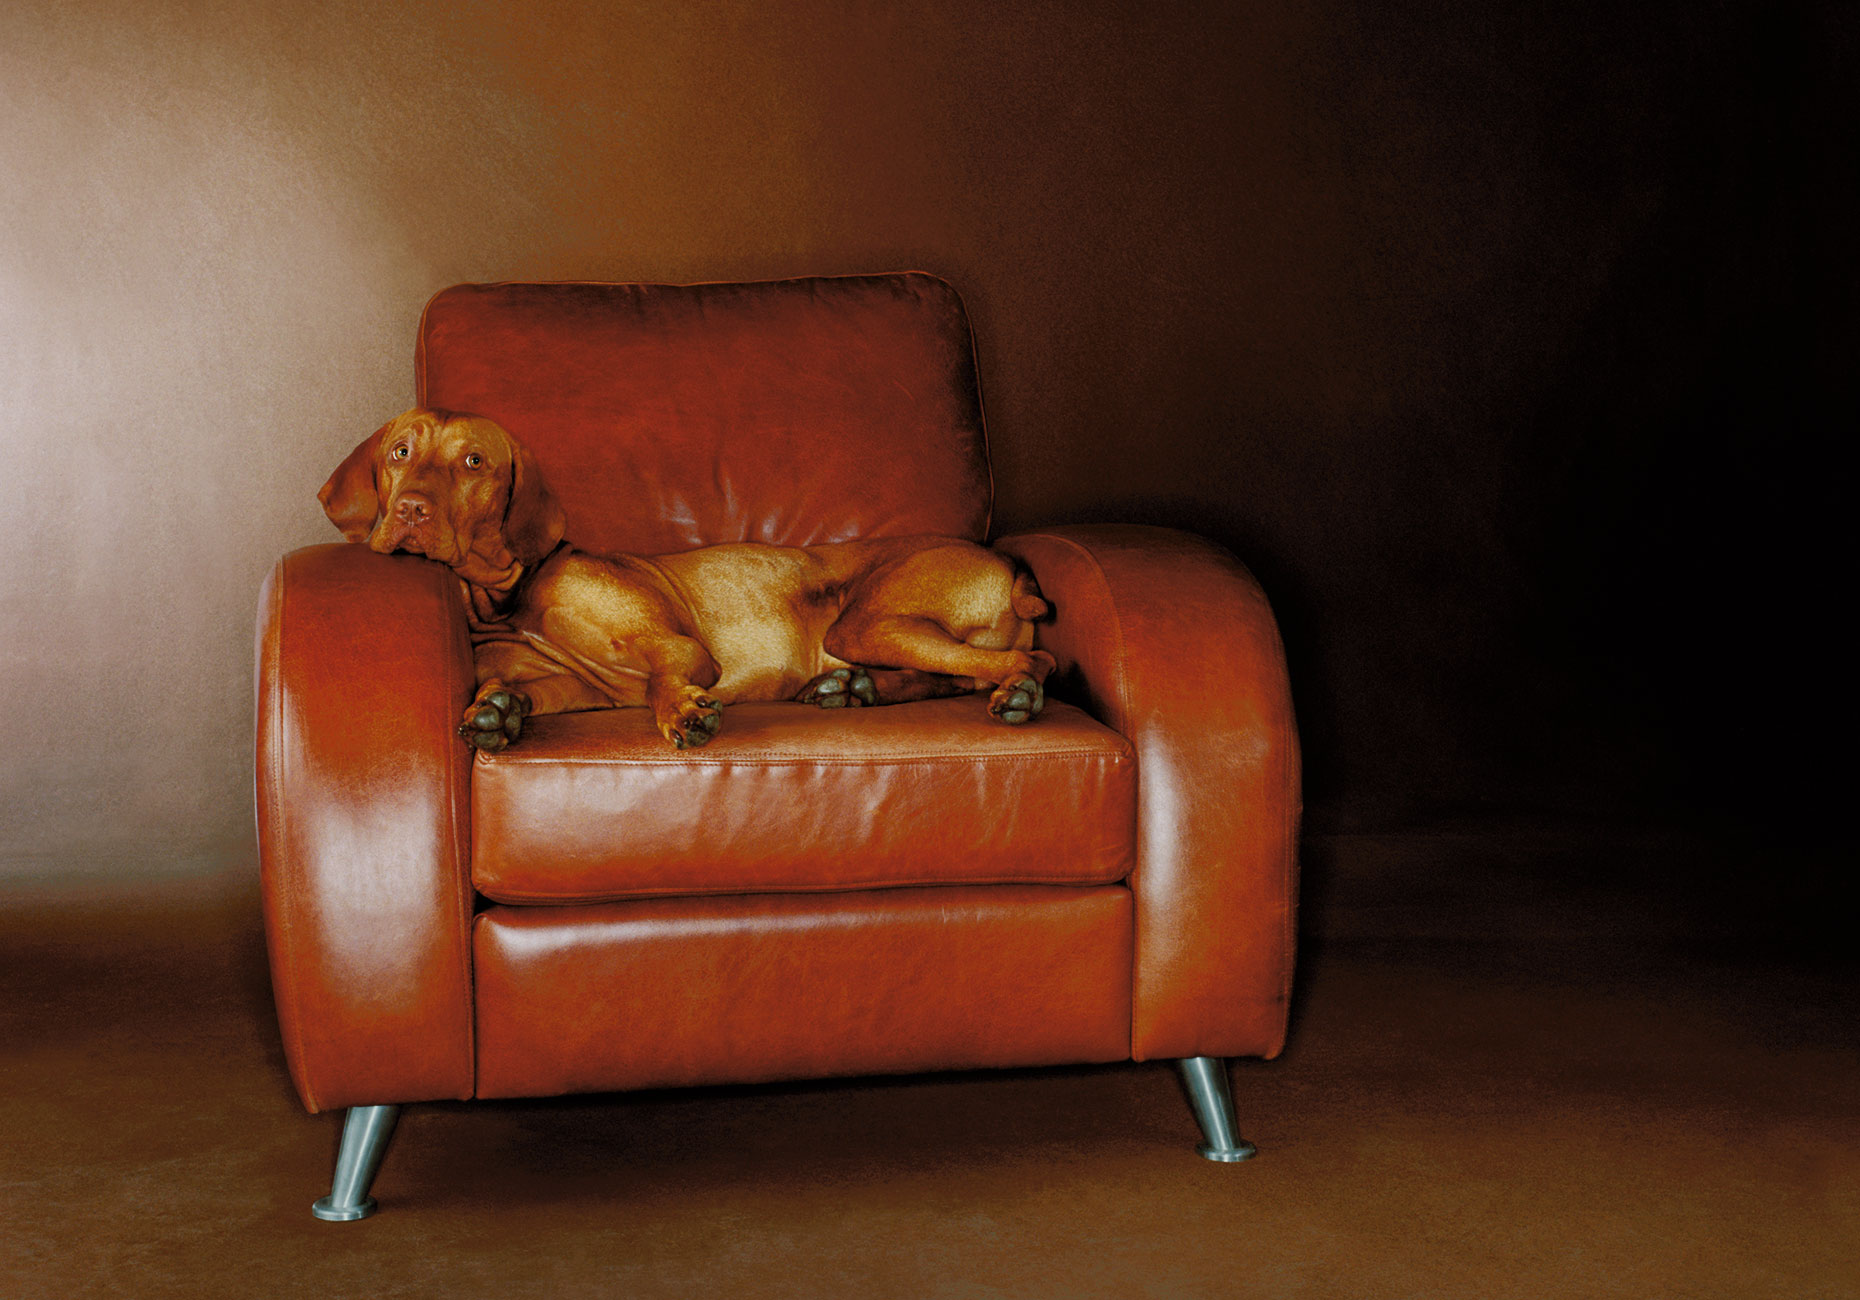 Dog-on-chair